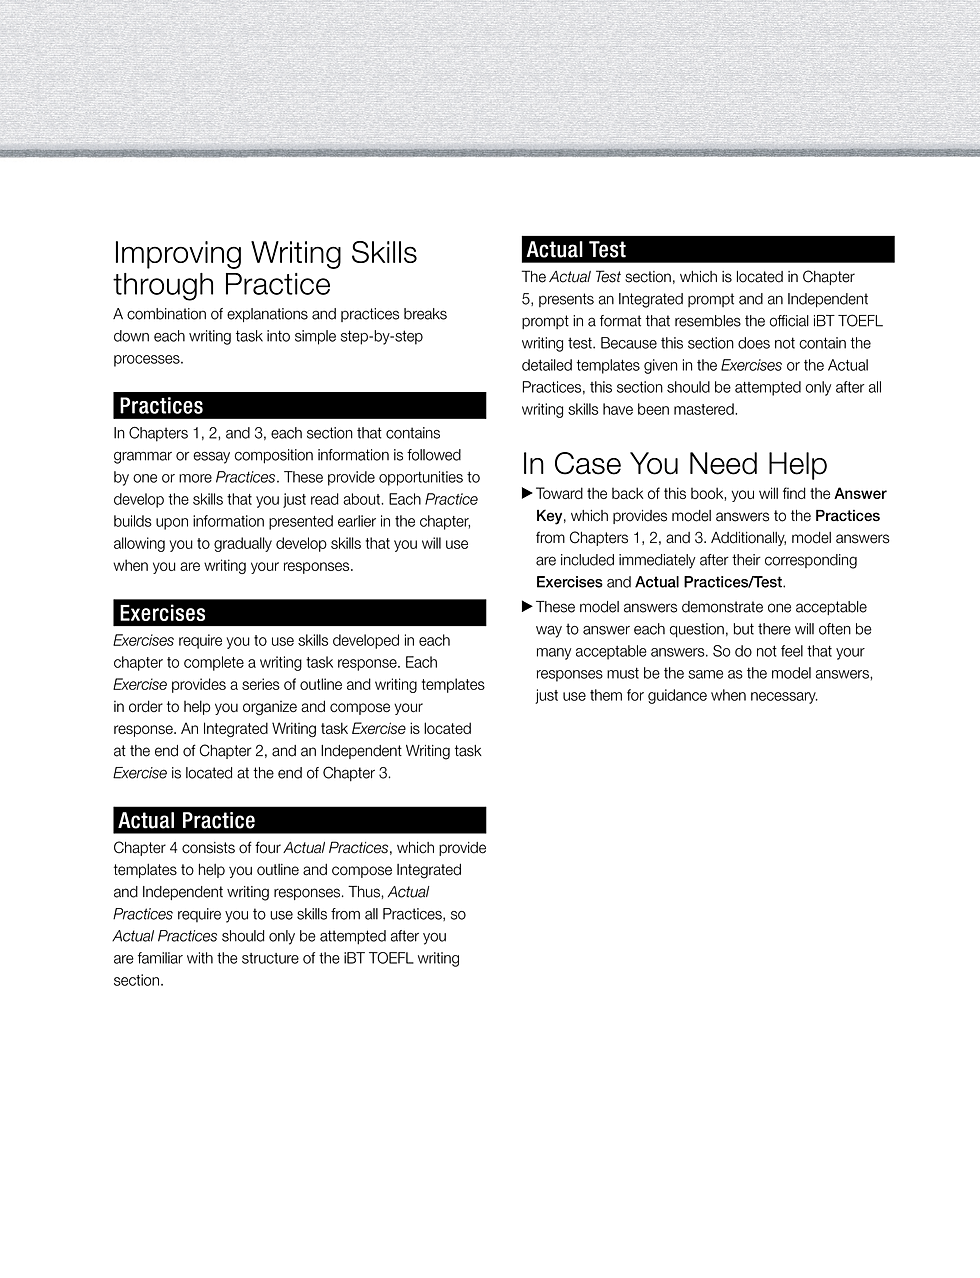 The Best TOEFL Writing Templates for Any Prompt - mandegar.info